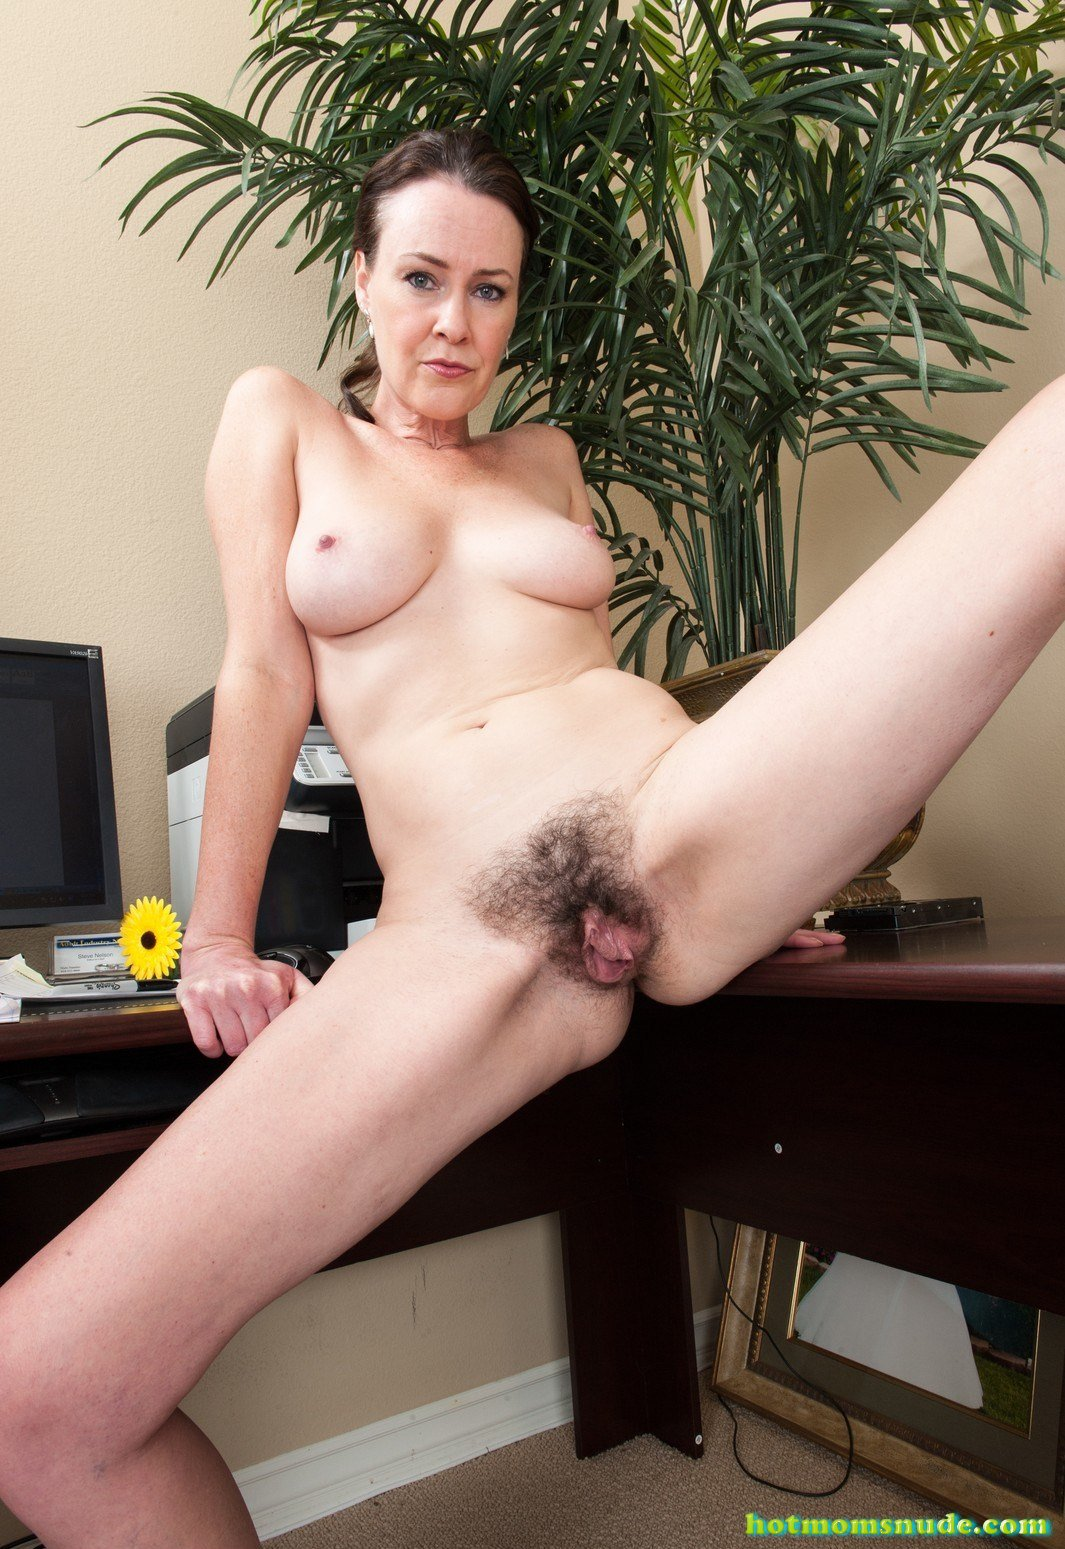 Veronica Snow Nude Pics And Biography - Hot Moms Nude-7751